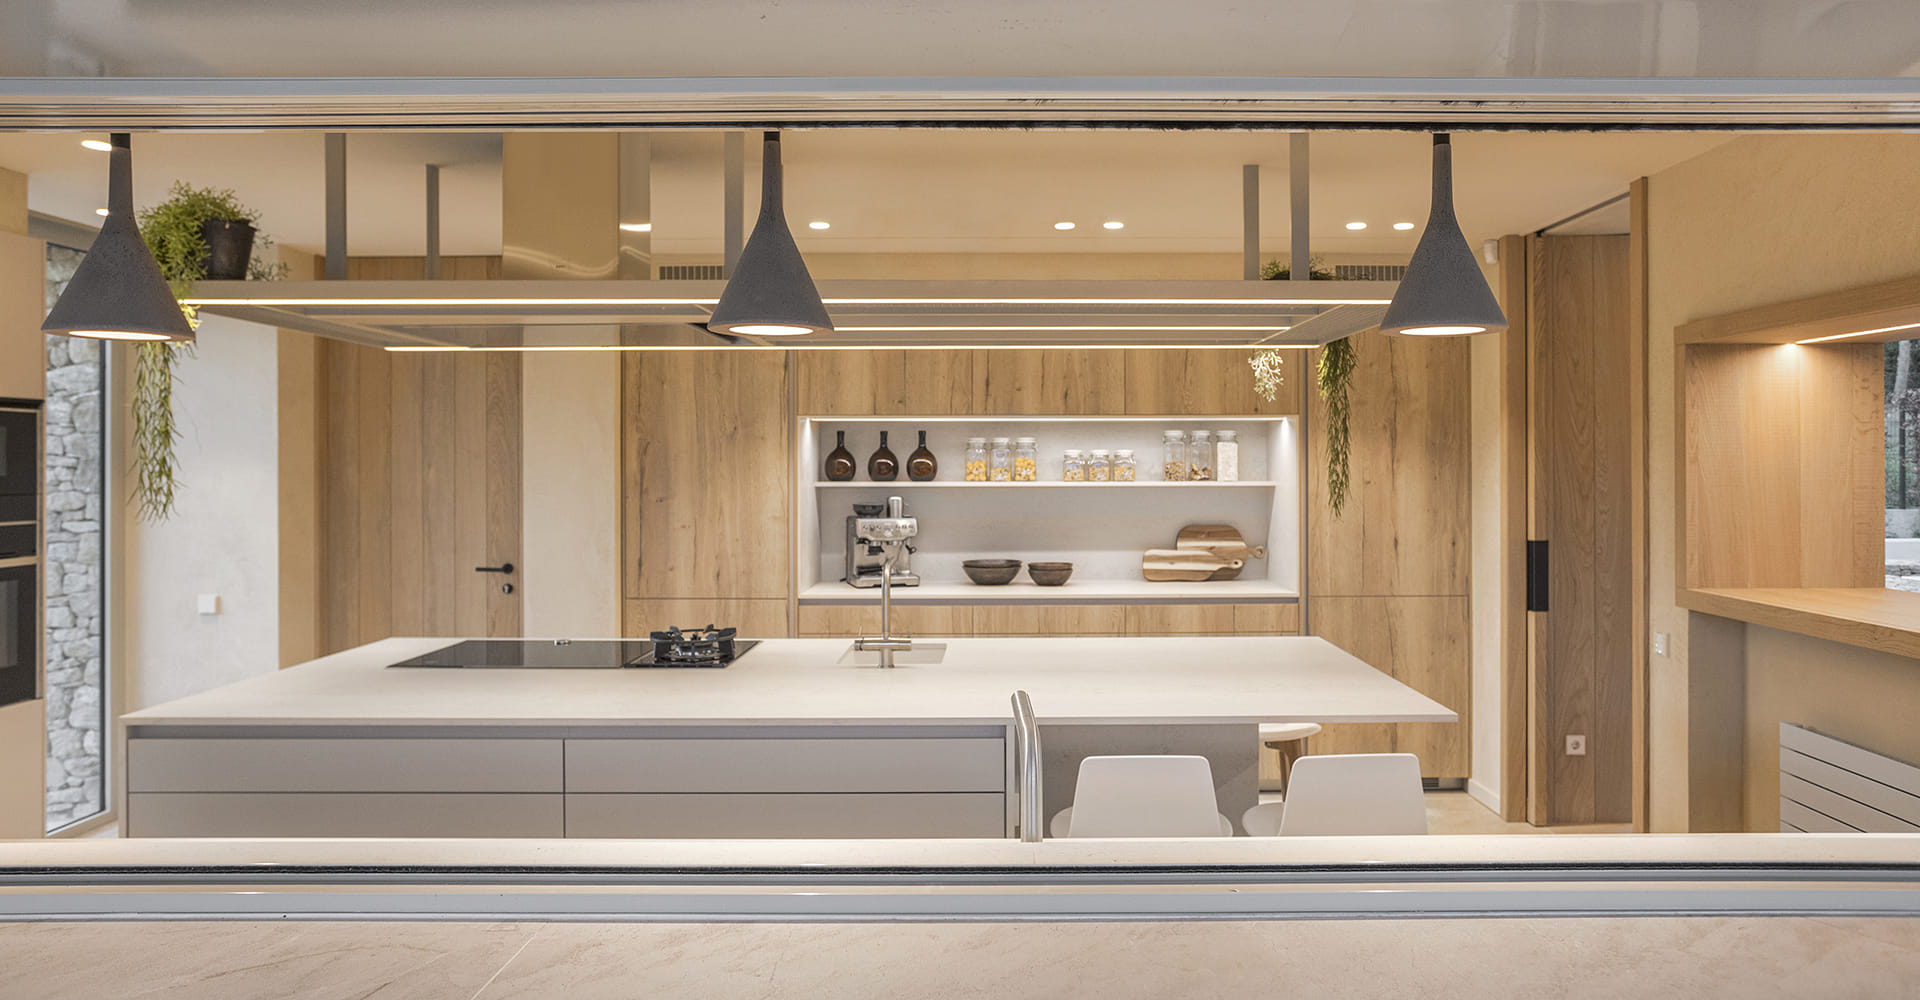 Santos kitchen with island and an oak wood finish in light colours